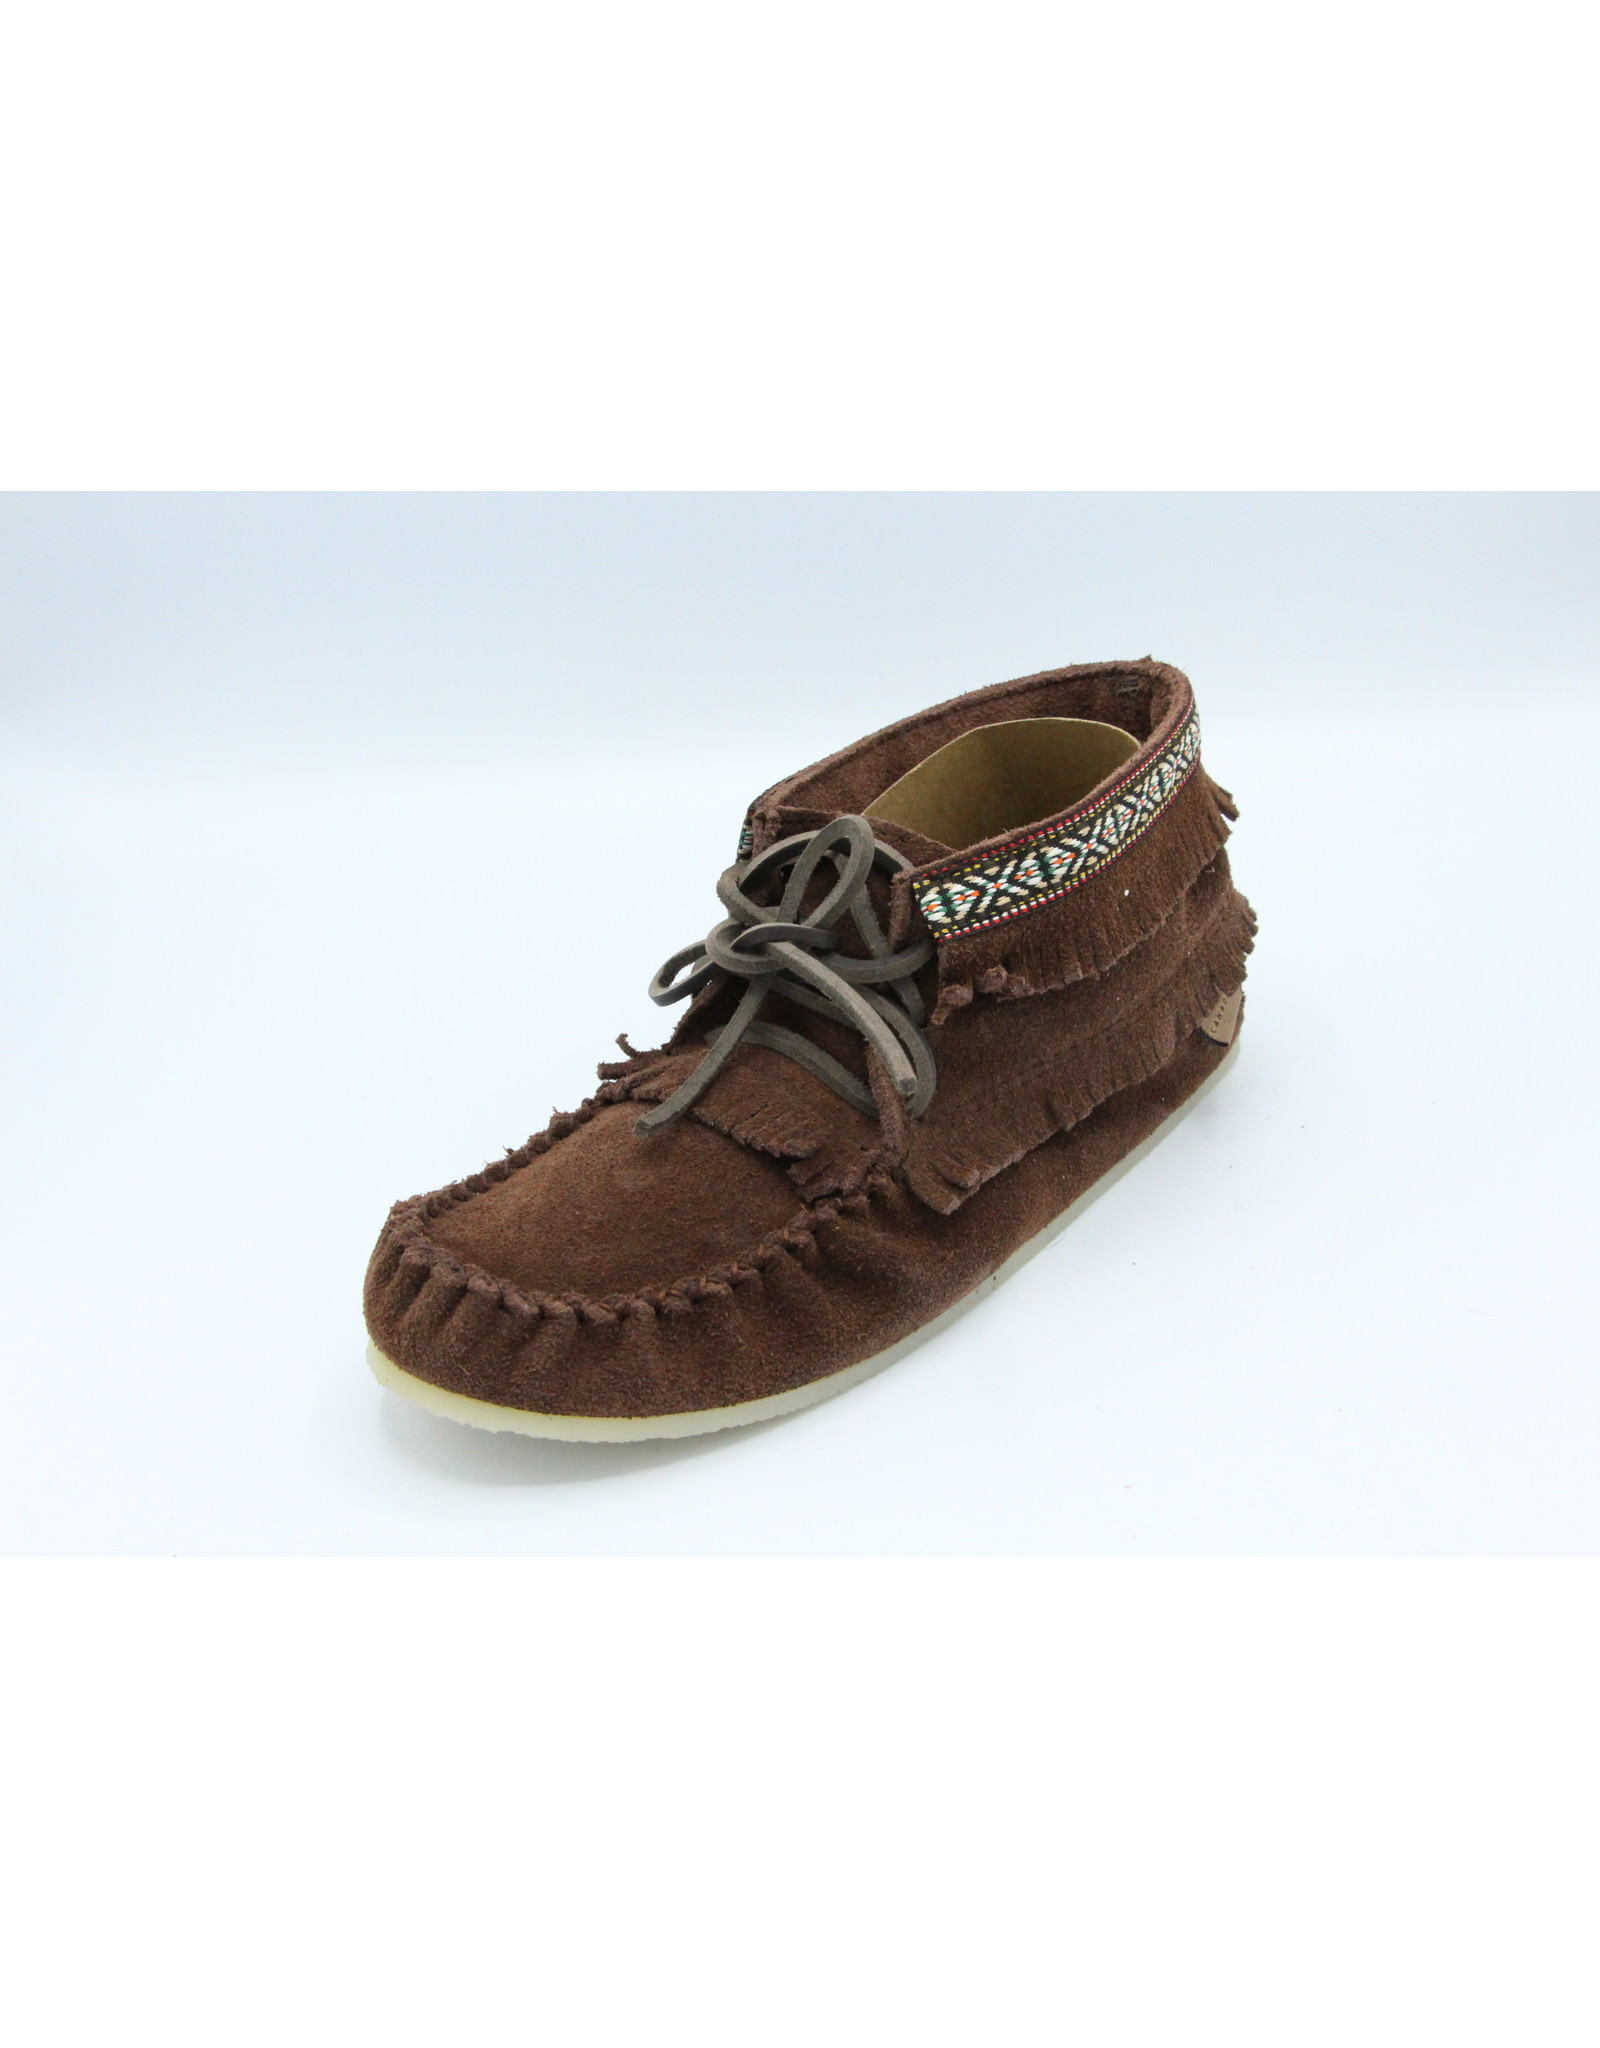 Moccasin Boot with Detailed Trim